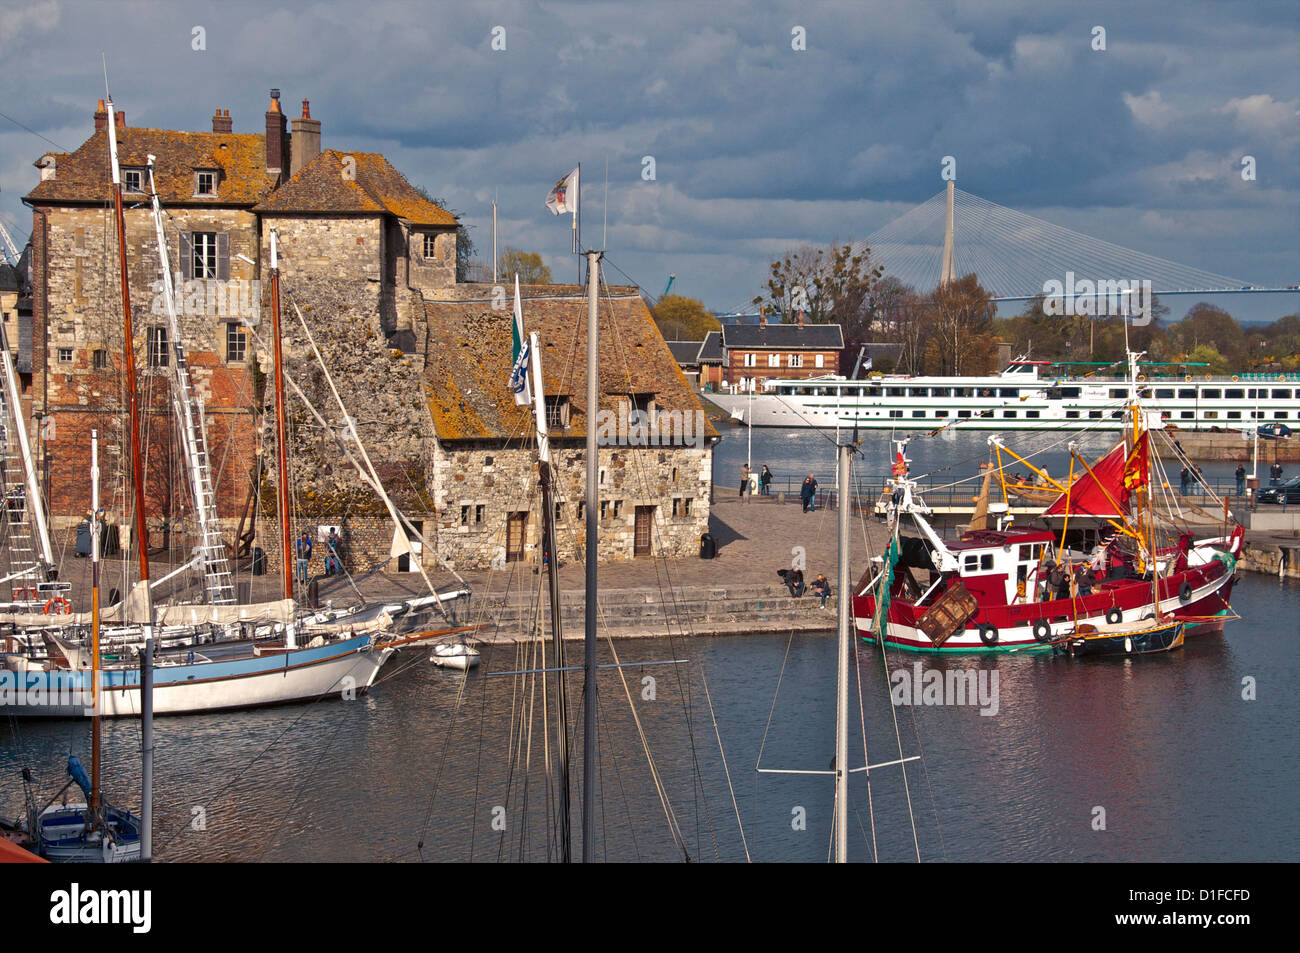 Tthe Vieux Bassin with the Lieutenance dating from the 17th century, and boats, Honfleur, Calvados, Normandy, France, - Stock Image